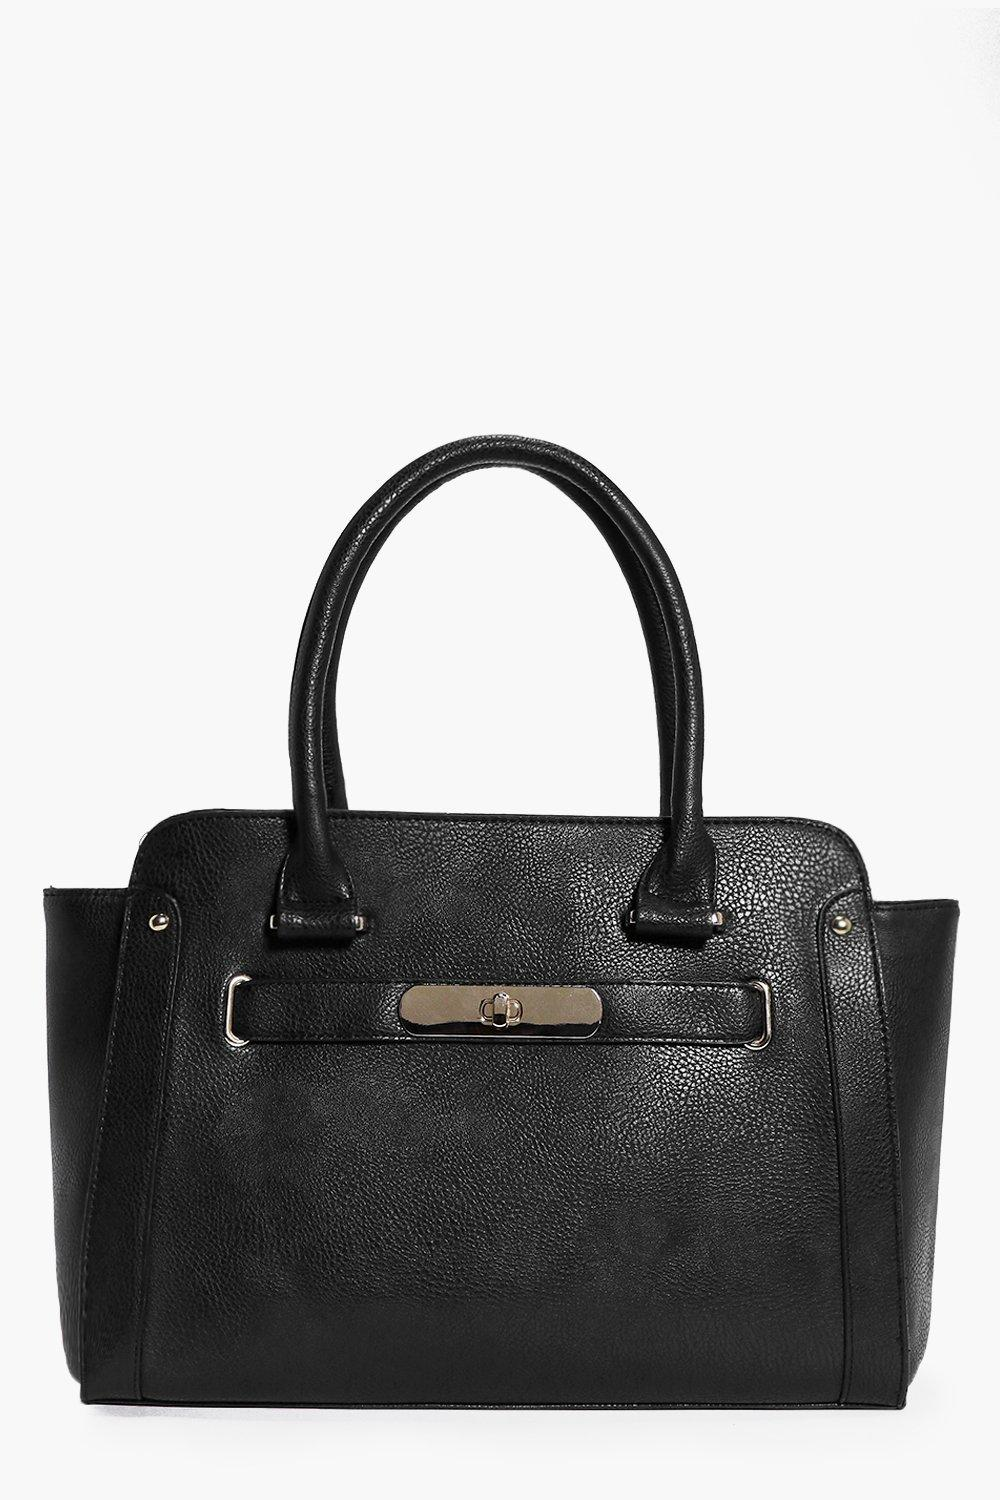 Oversize Turn Lock Clasp Day Bag black